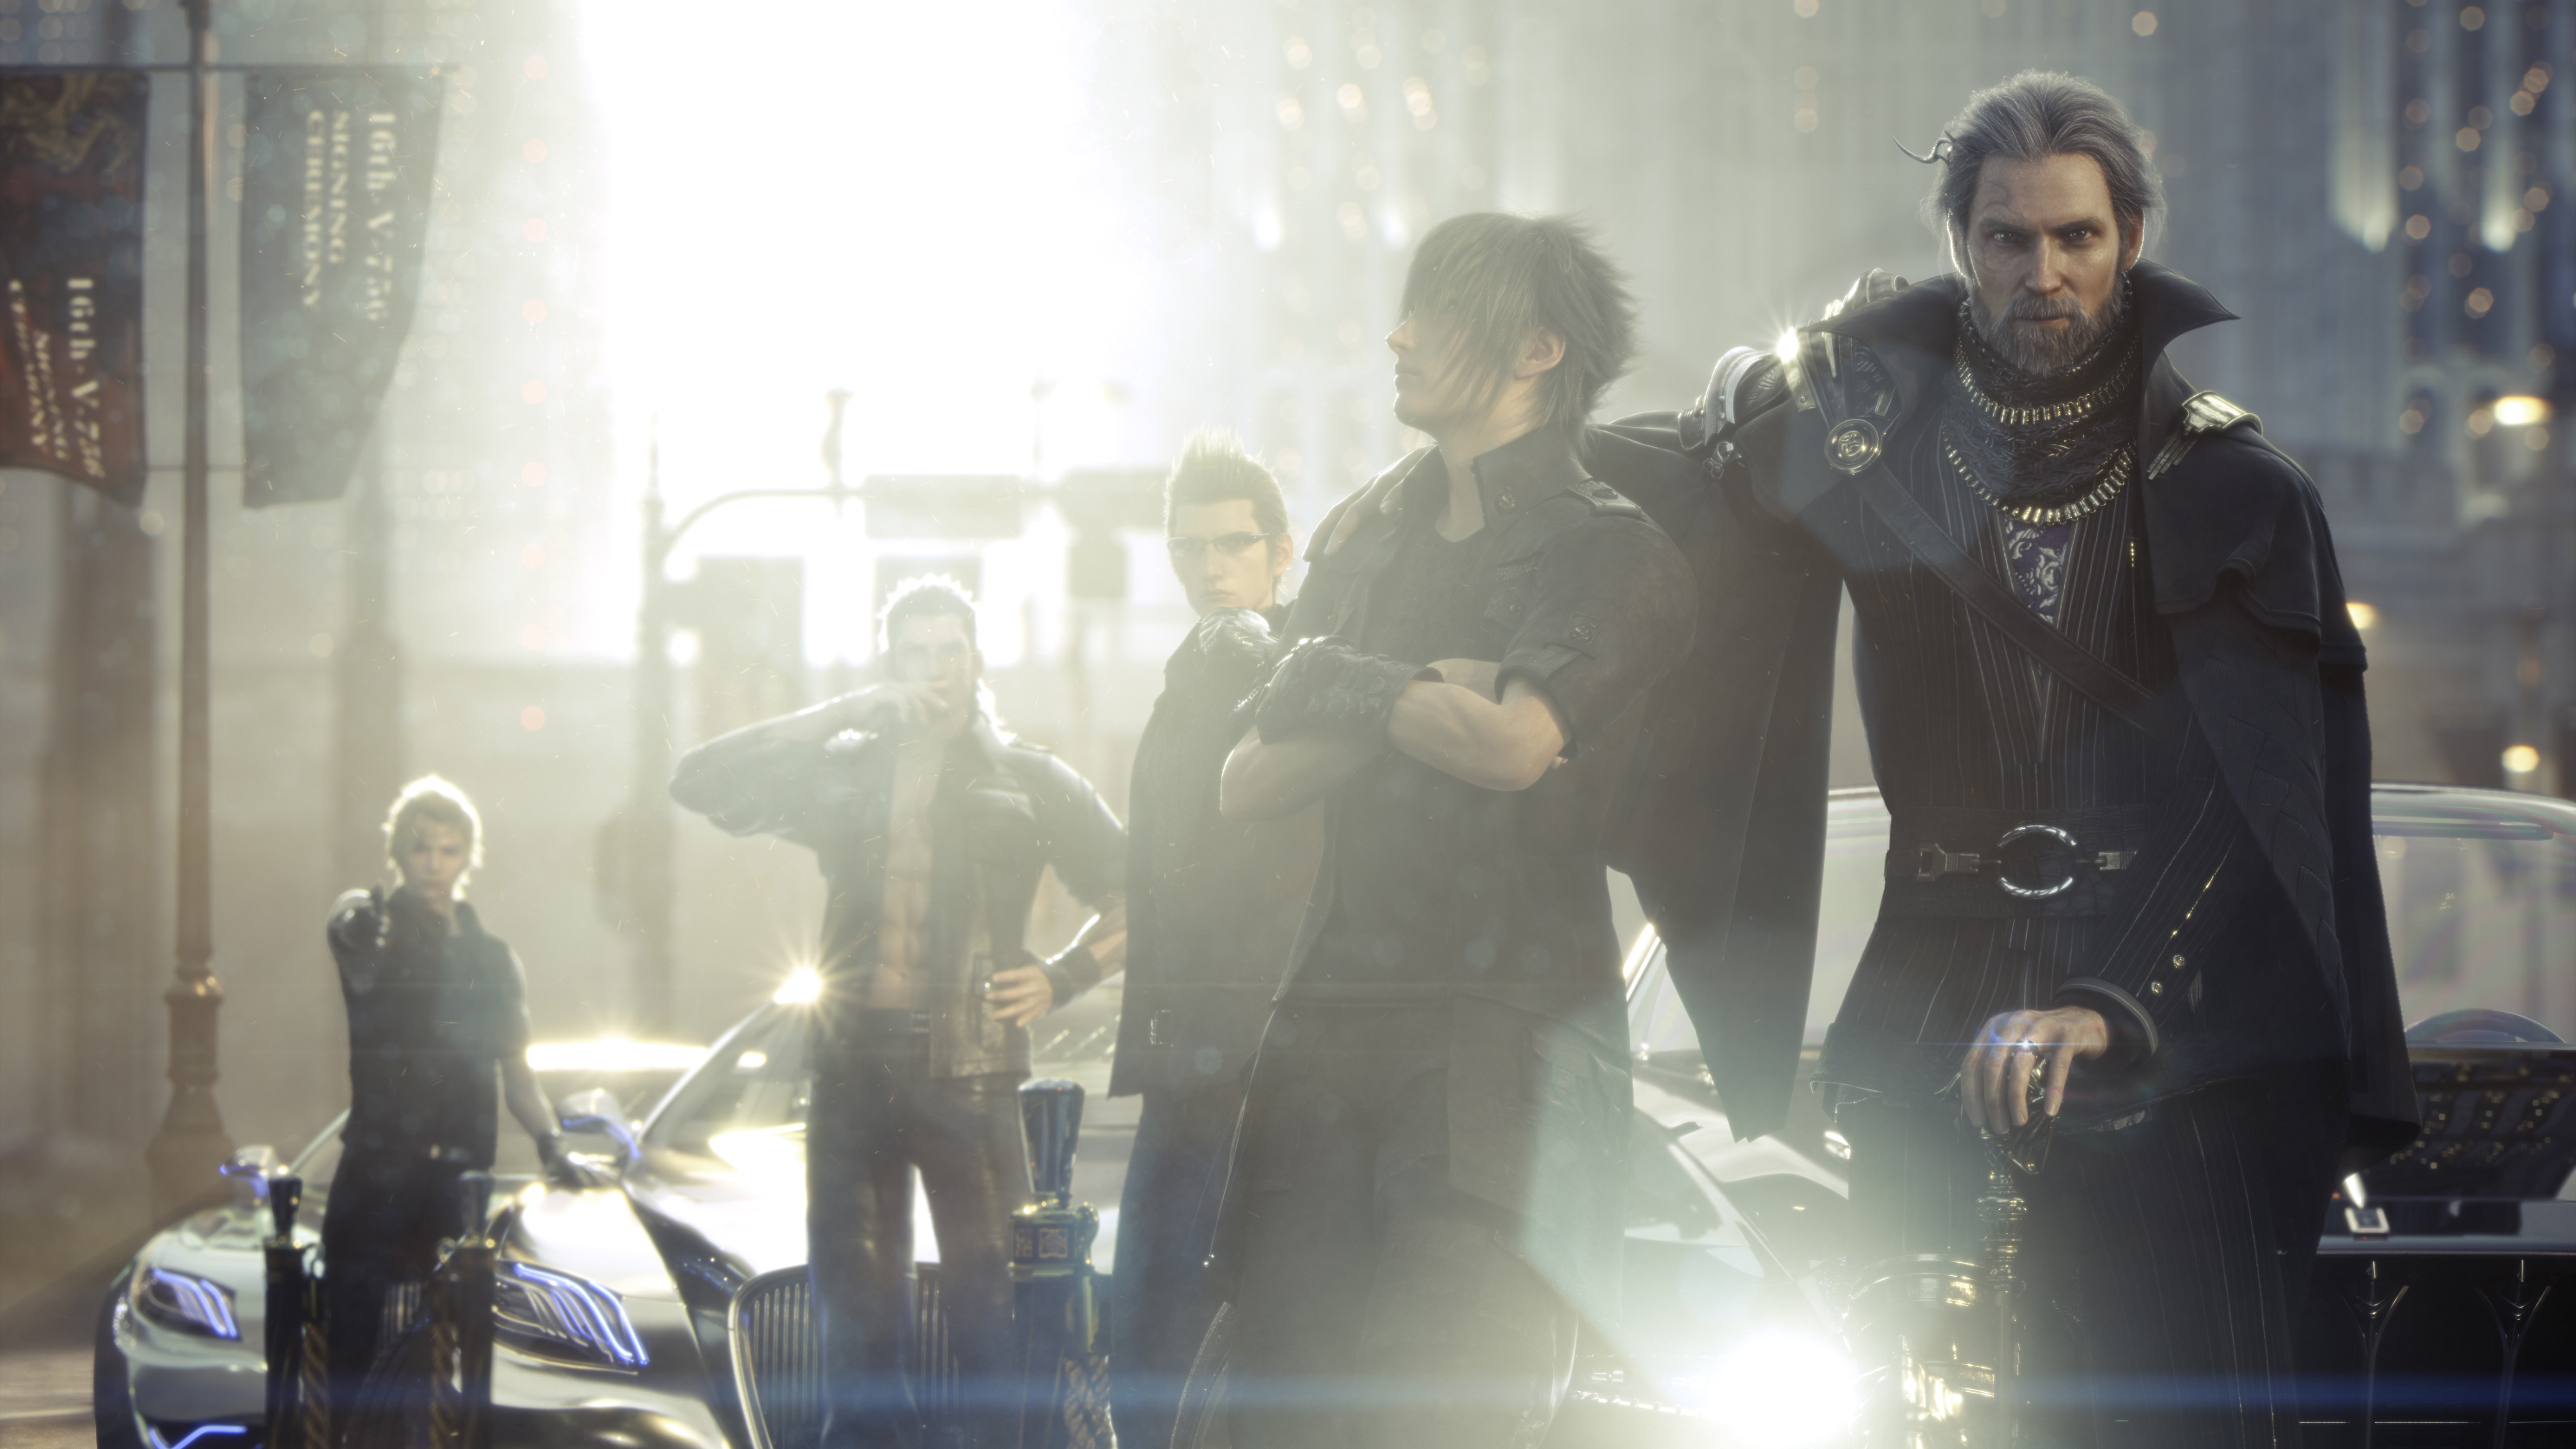 Final Fantasy Xv 4k Ultra Hd Wallpaper: Final Fantasy XV Royal Edition, HD Games, 4k Wallpapers